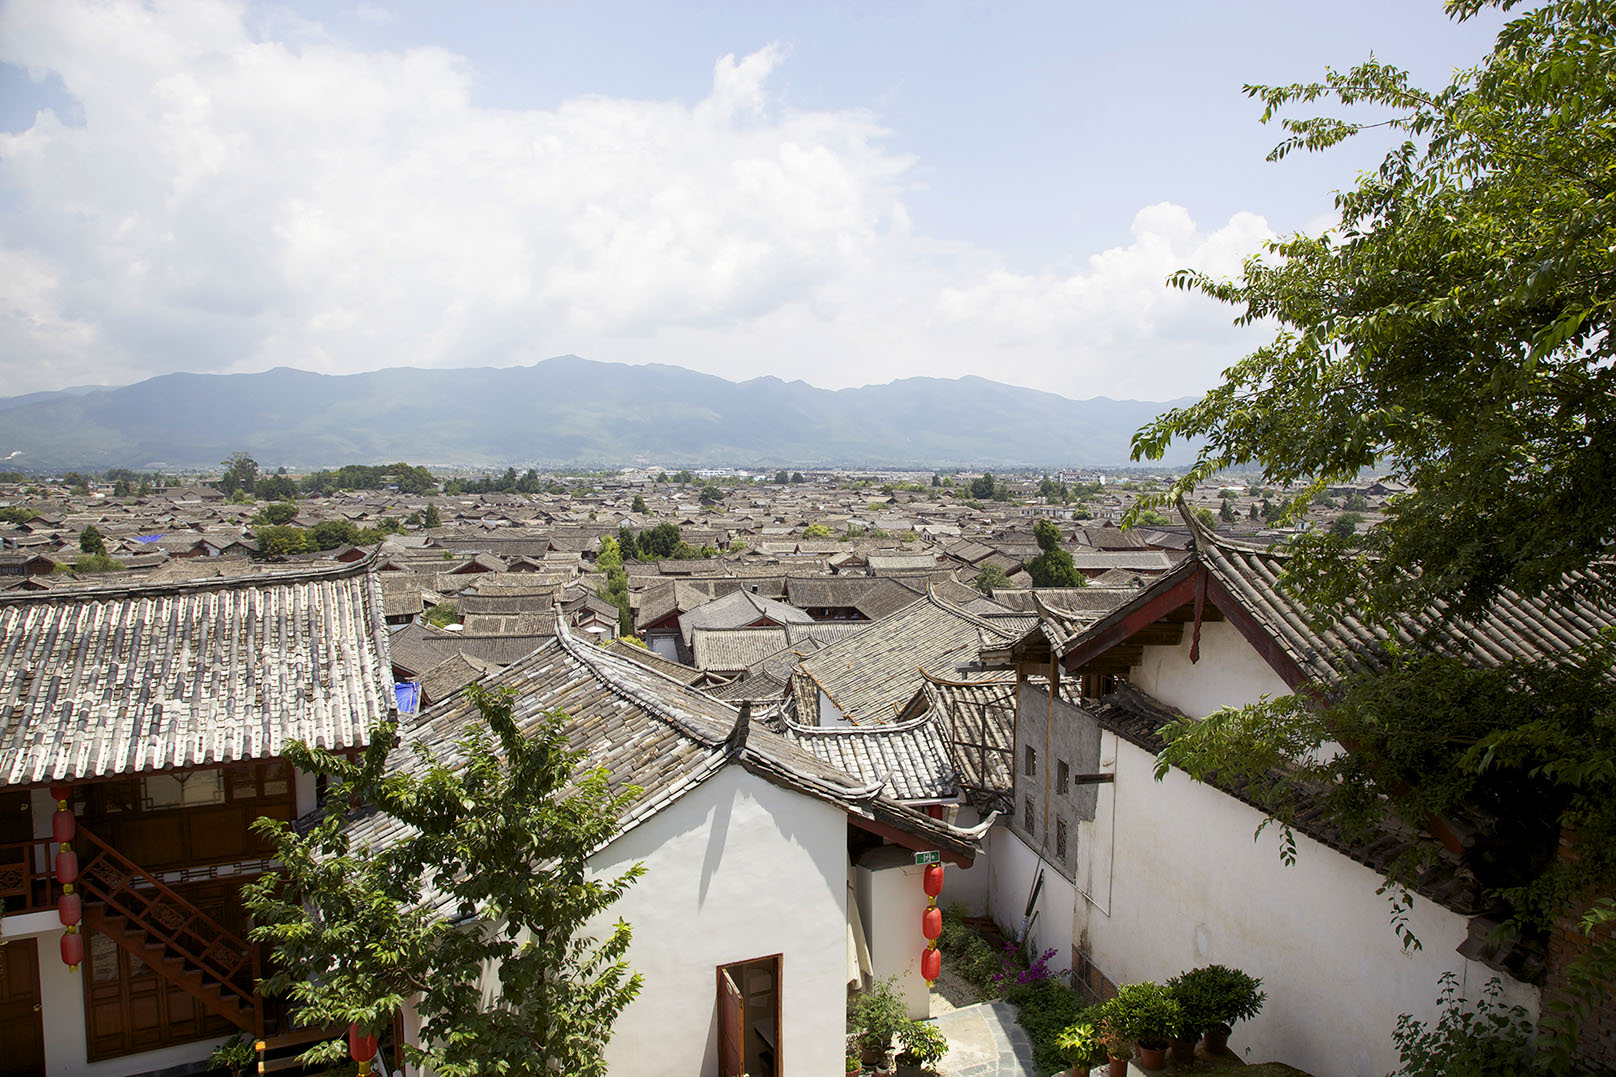 Backpacking in Asien mit Kind